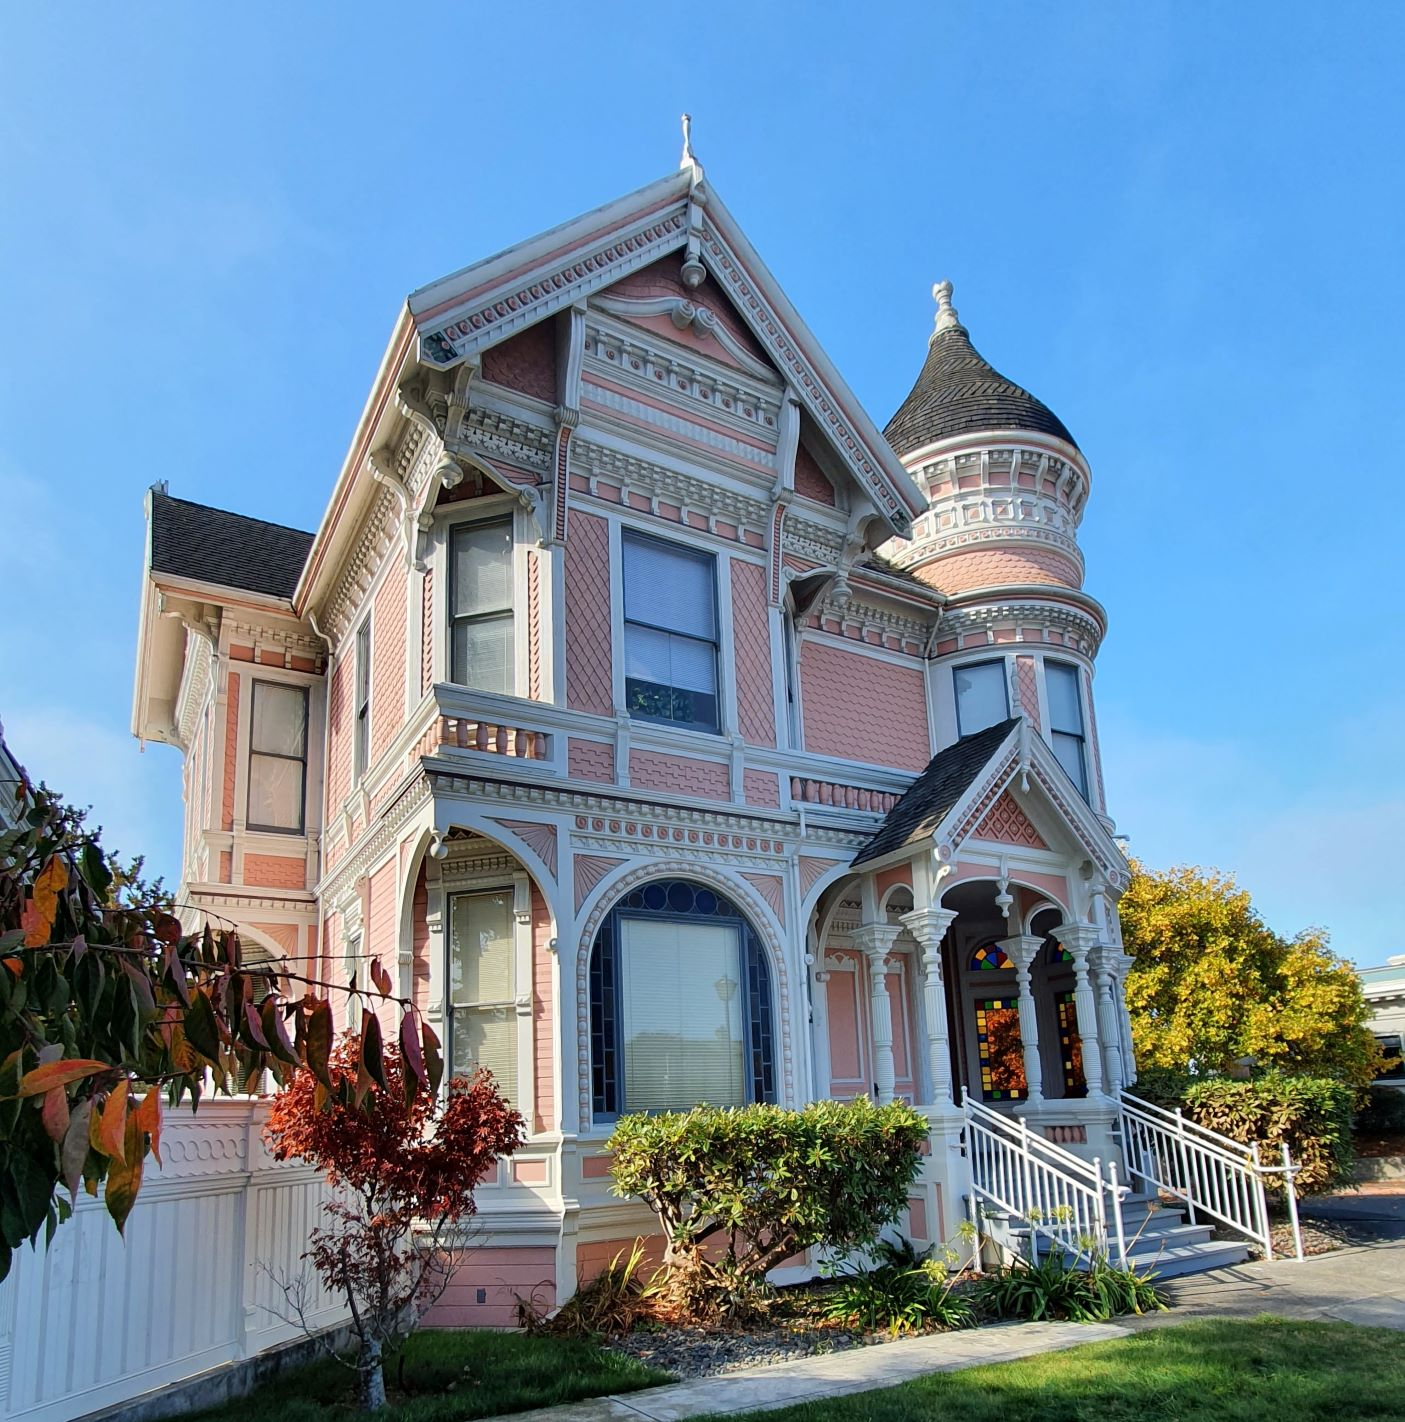 A pink Victorian style manor